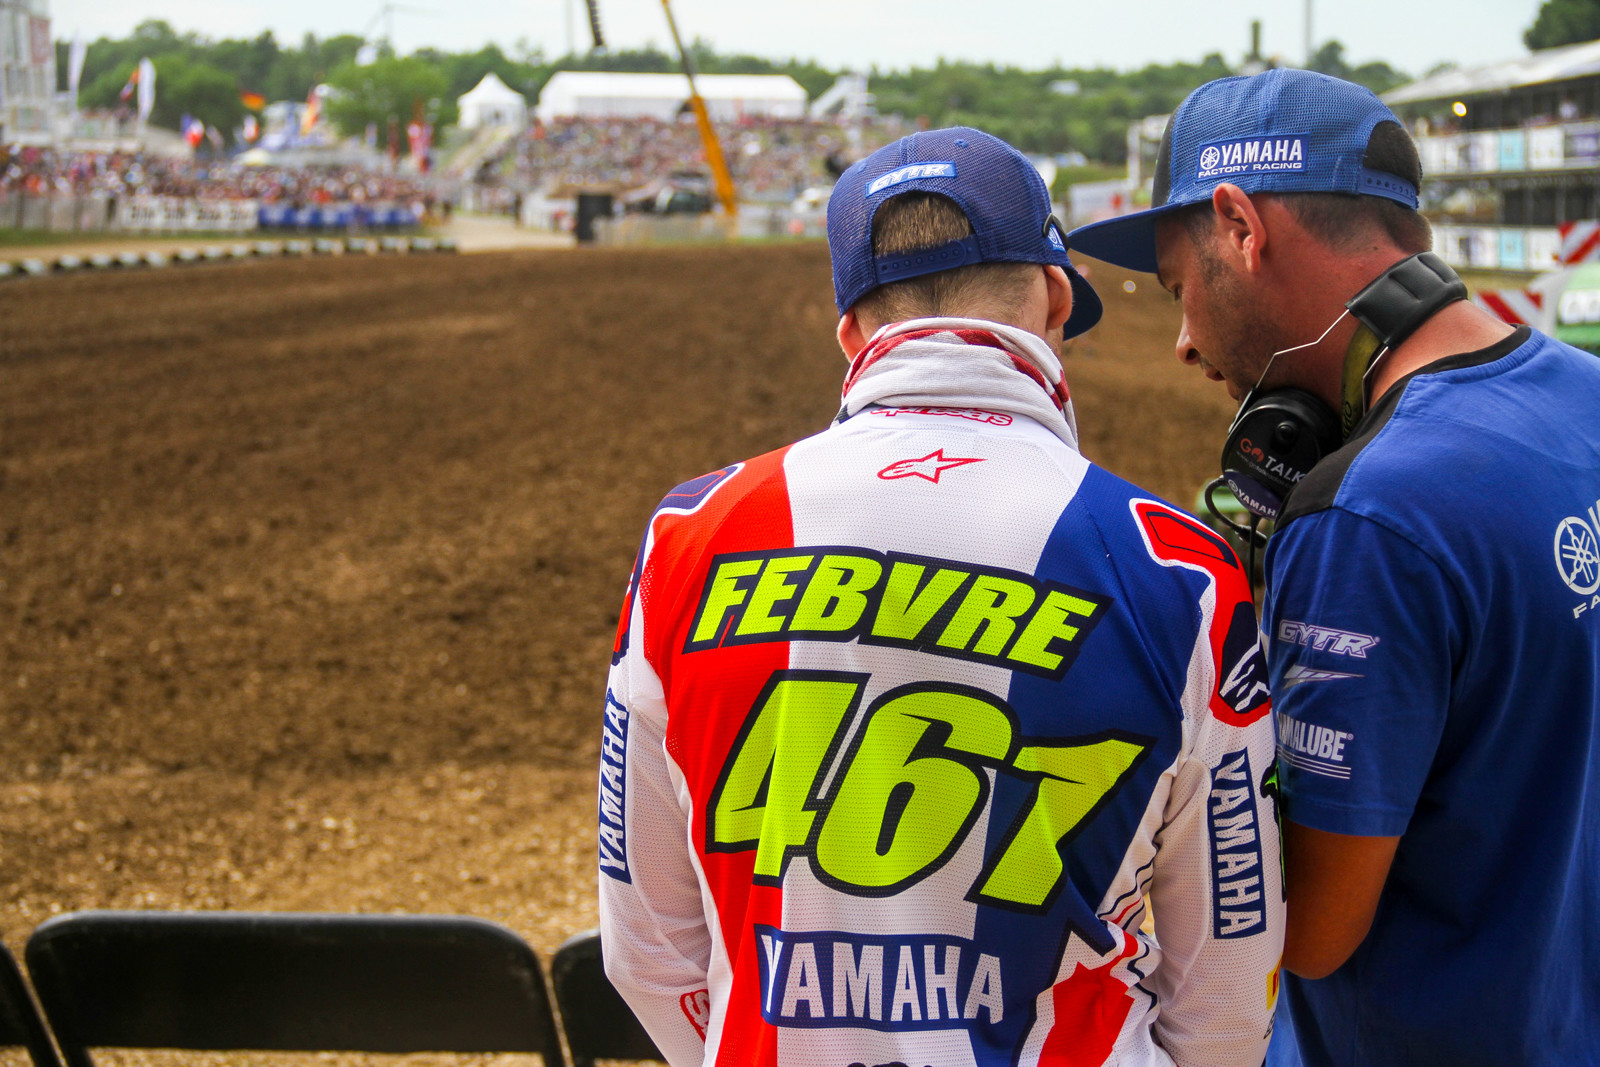 Romain Febvre being the other popular French rider in the MXGP field, was also sporting some one-off gear.